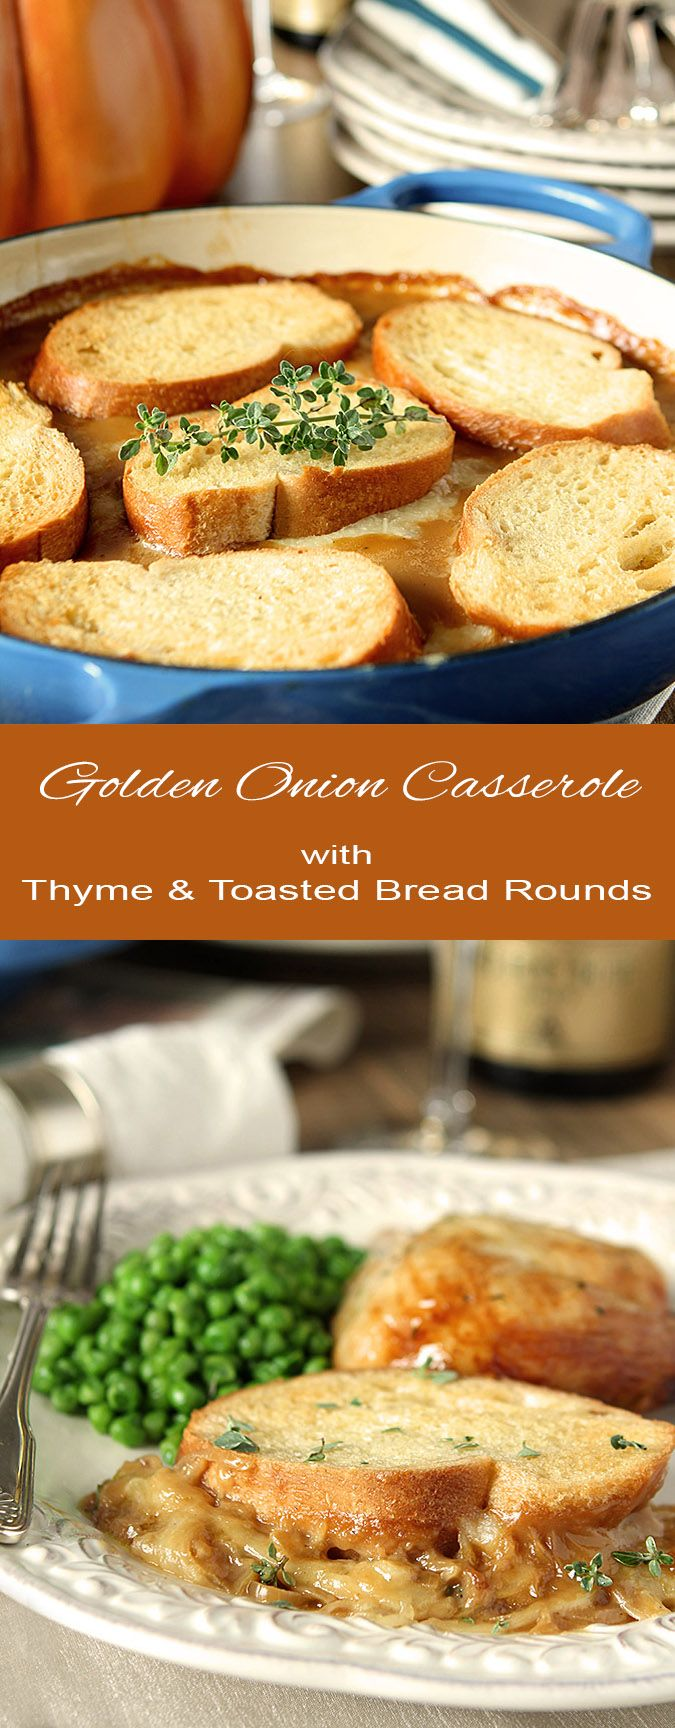 3715 best lets pull up a chair images on pinterest chair golden onion casserole with thyme and toasted bread rounds tastes like french onion soup in a casserole forumfinder Gallery